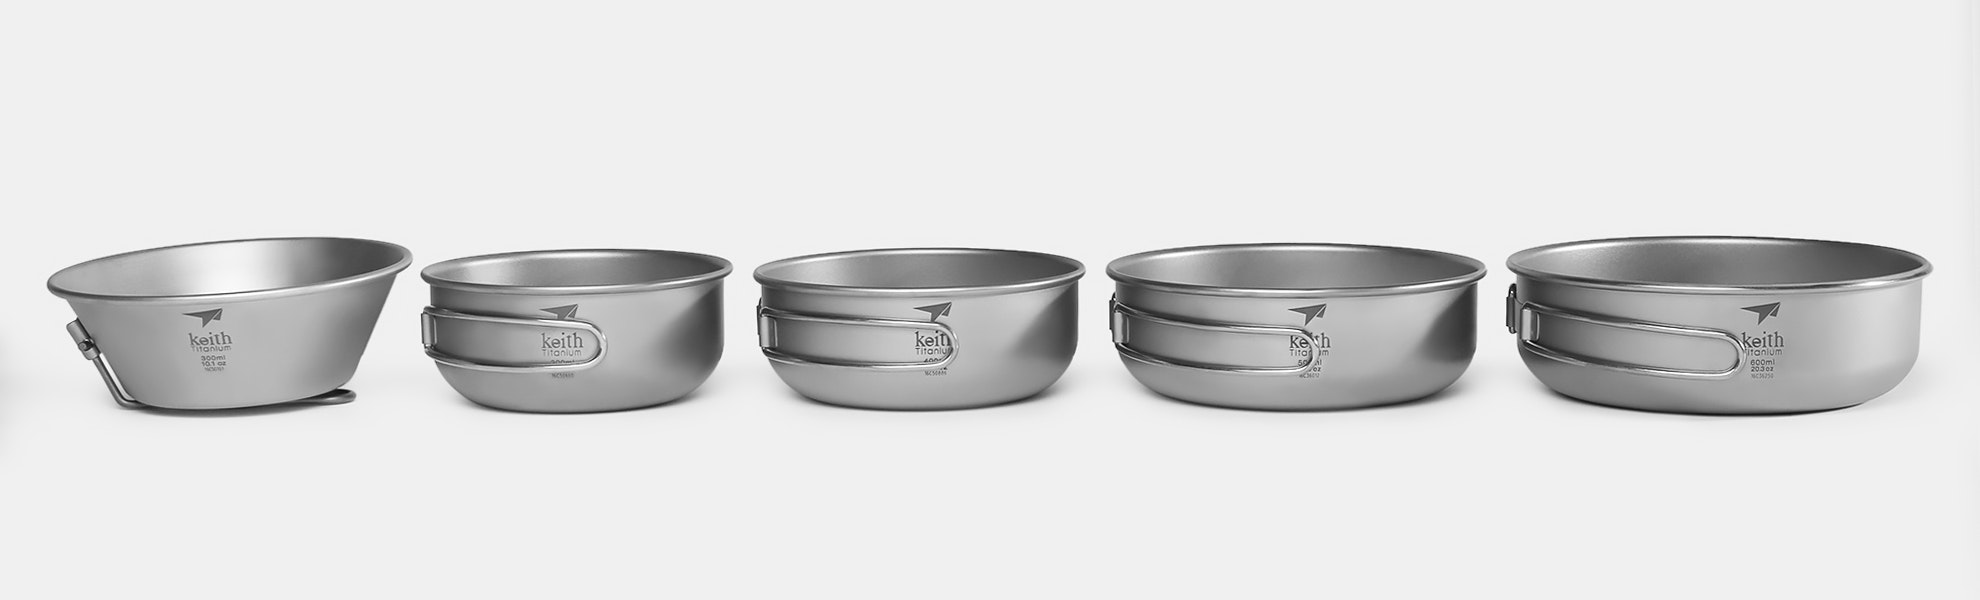 Keith Titanium Bowls w/ Folding Handles (2-Pack)